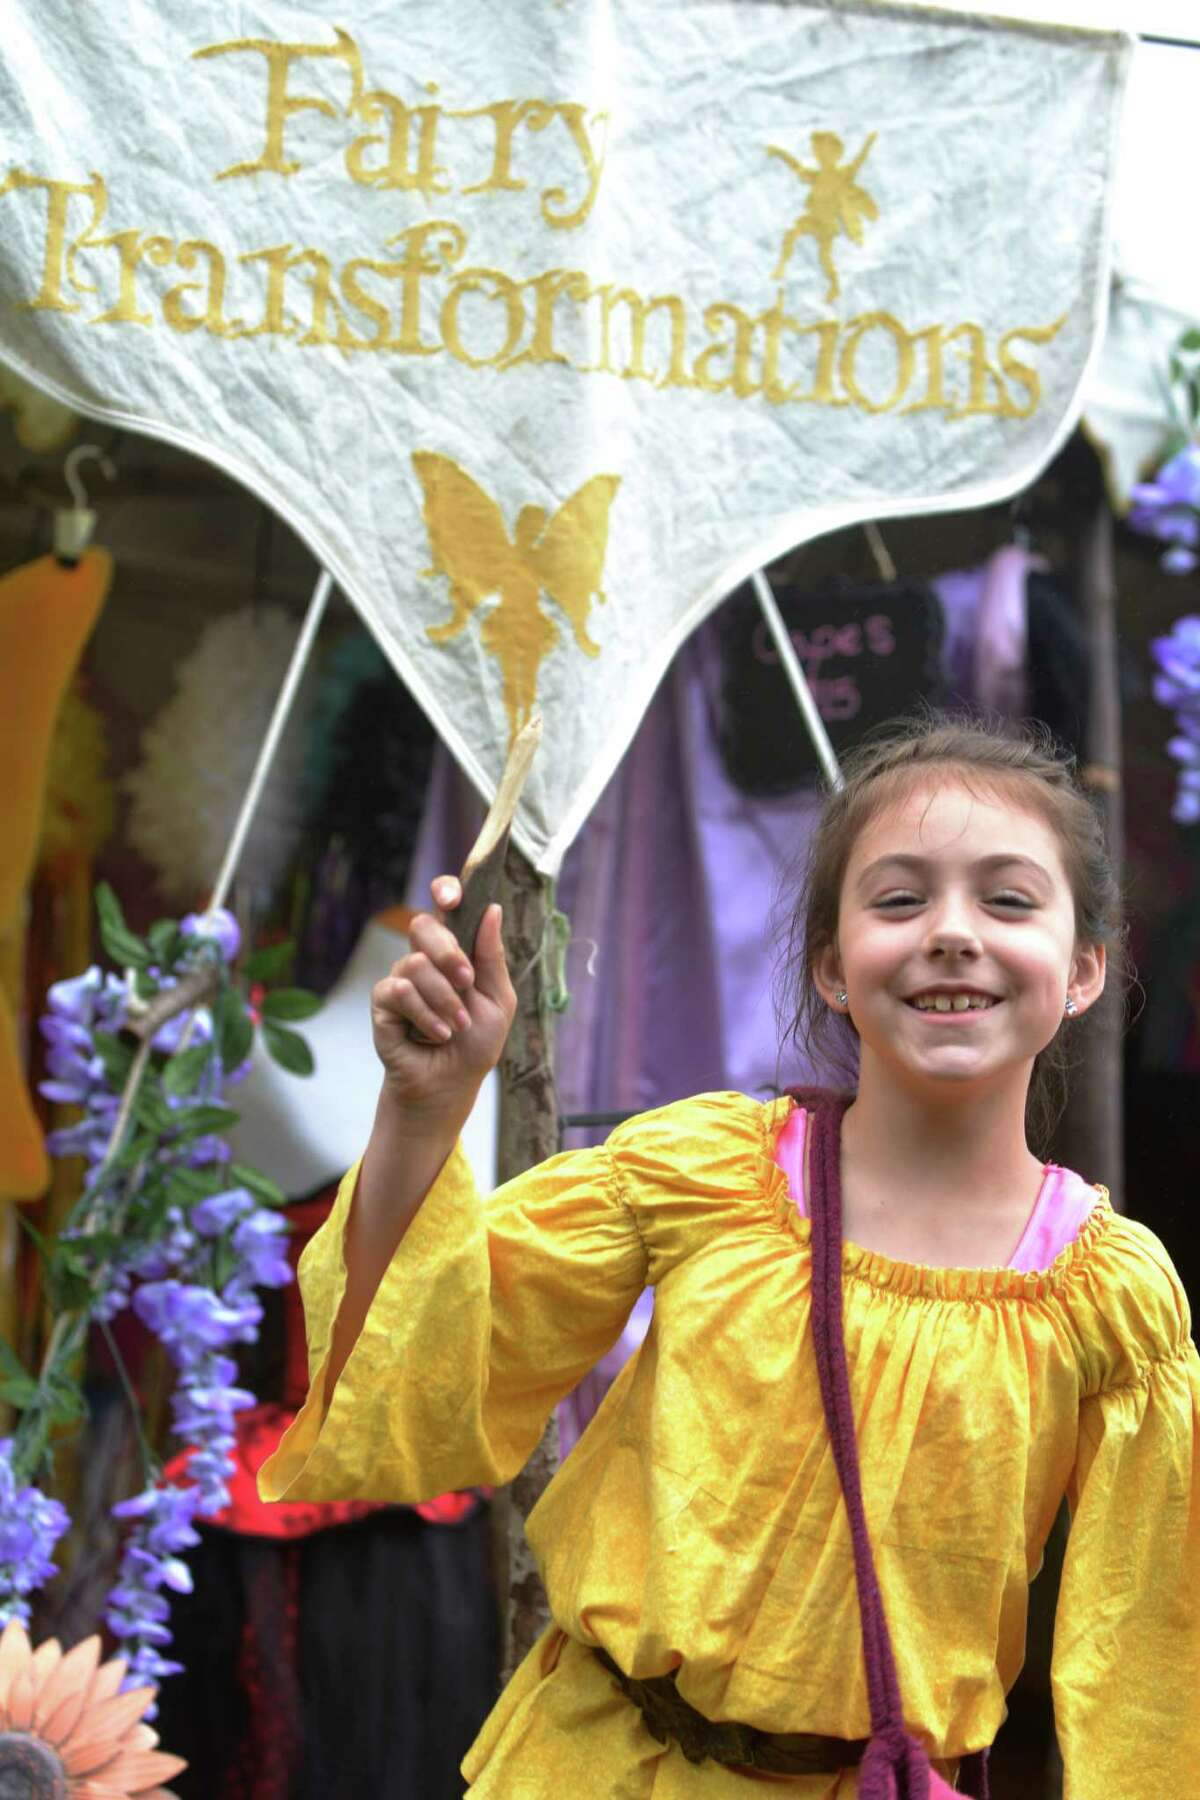 Breena Abbot, eight year old from Machester, Conn. shows off her wooden knife at the Midsummer Fantasy Reinassance Faire at Warsaw Park in Ansonia, Conn. on June 28, 2015. The last weekend of the faire is July 4-5, 2015 from 11 a.m to 6:30 p.m.